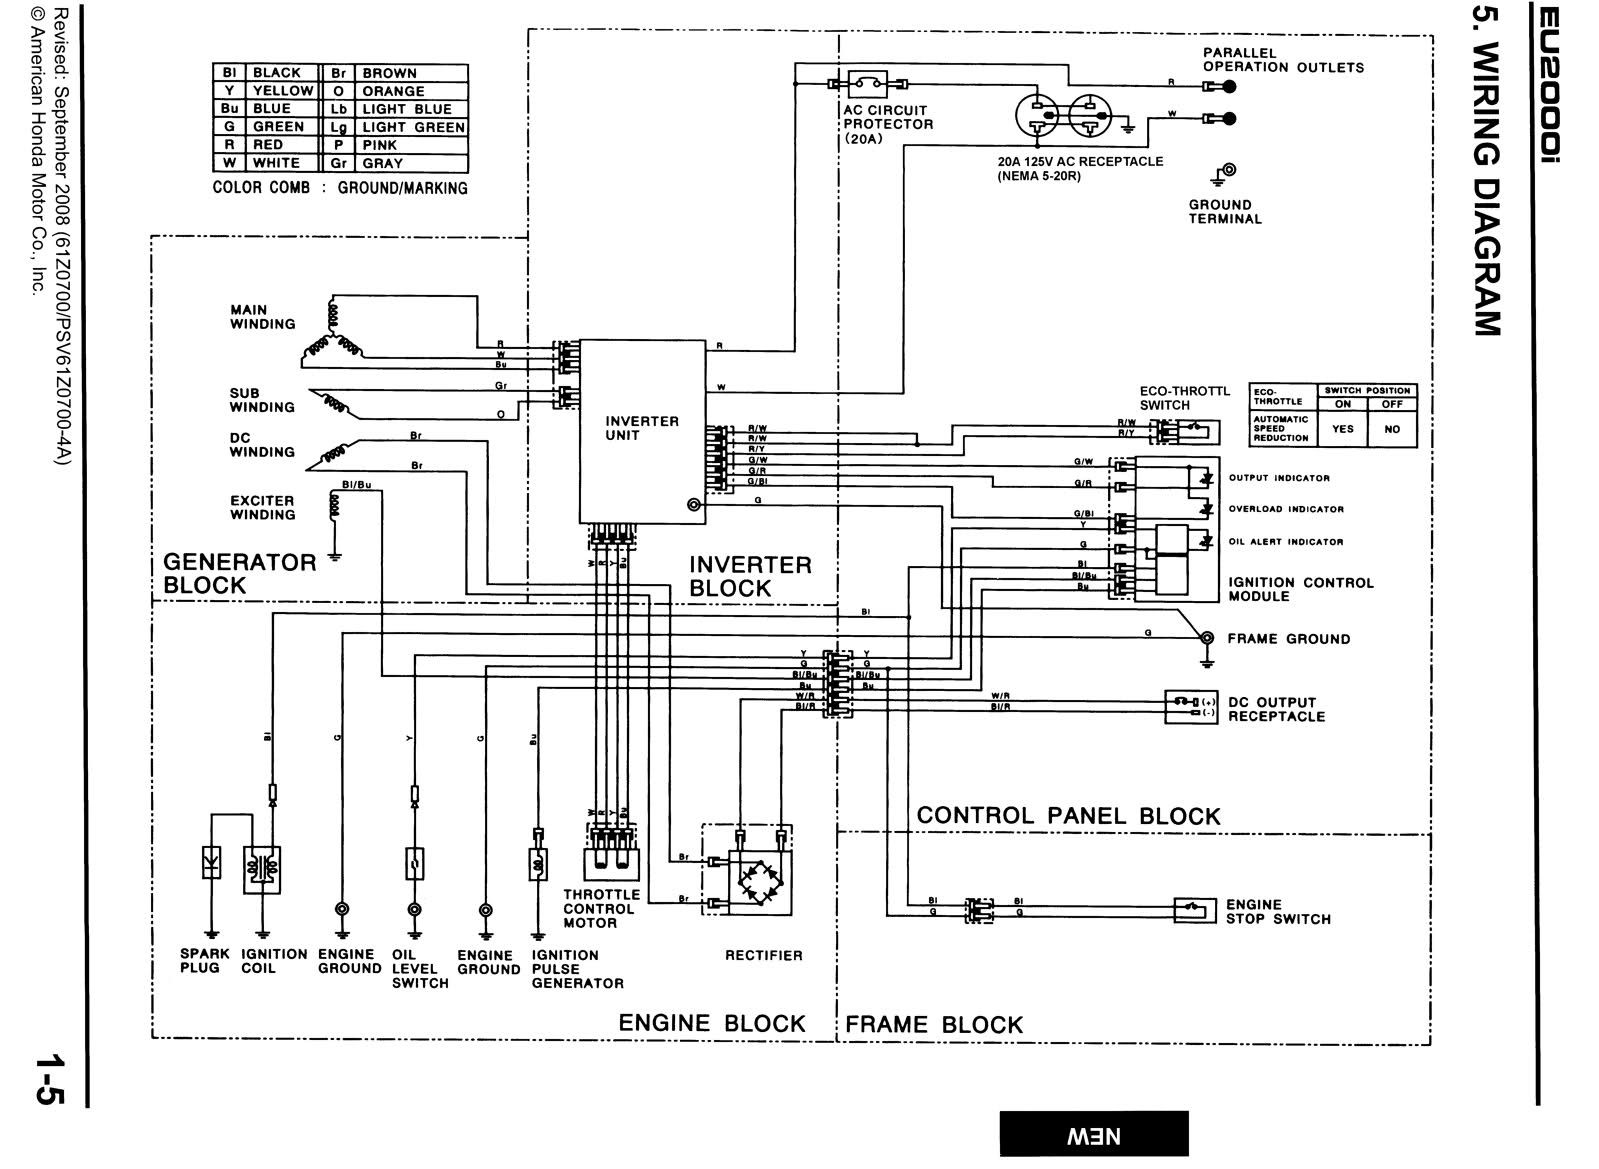 Holiday Rambler Wiring Diagram Holiday Rambler Rambler Portable Inverter Generator